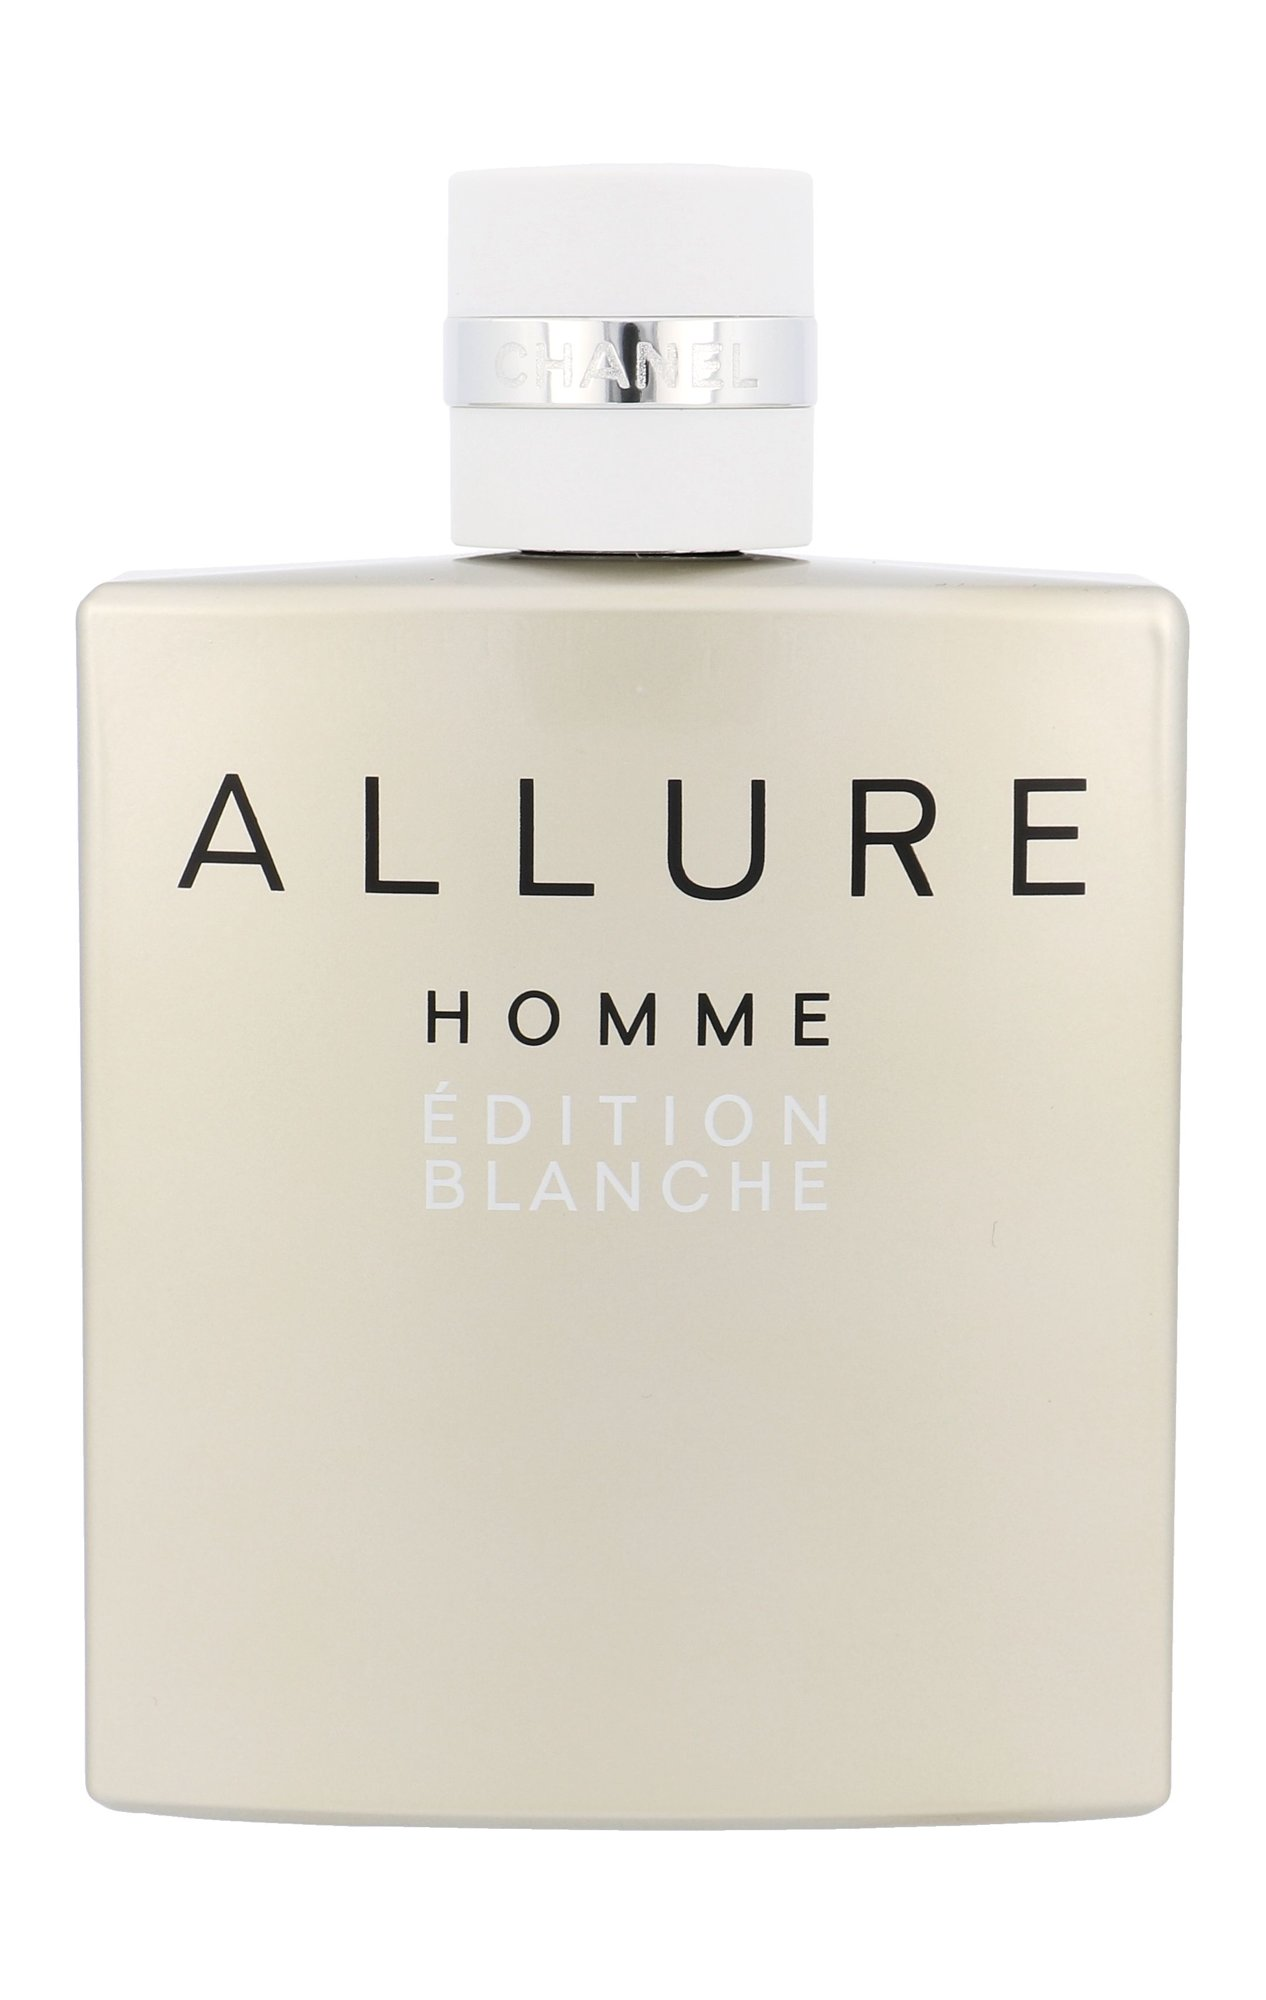 Chanel Allure Homme Edition Blanche EDP 150ml